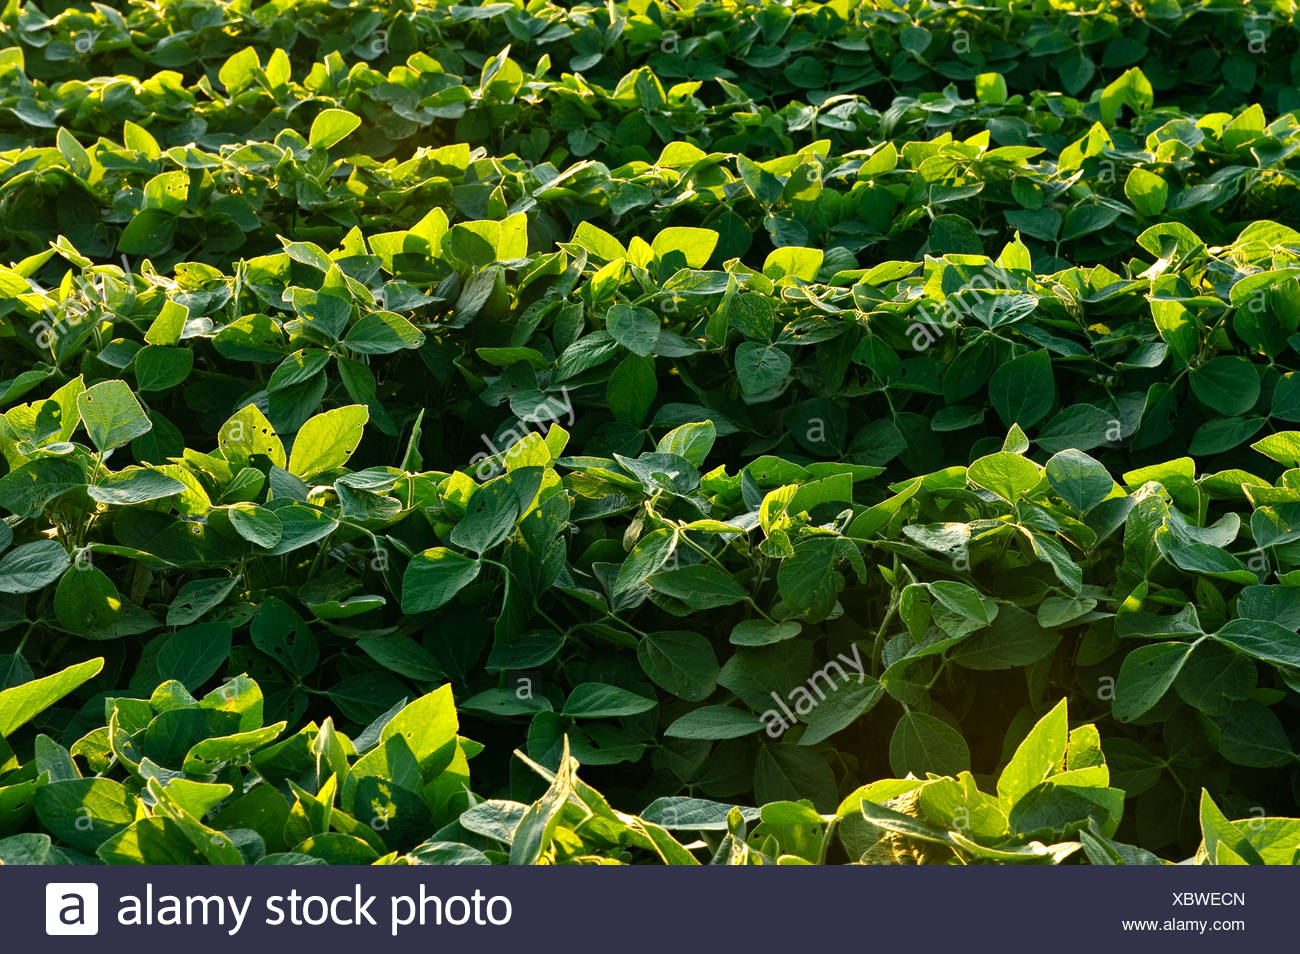 Agriculture - Rows of healthy mid growth soybeans in late afternoon light / Iowa, USA. - Stock Image